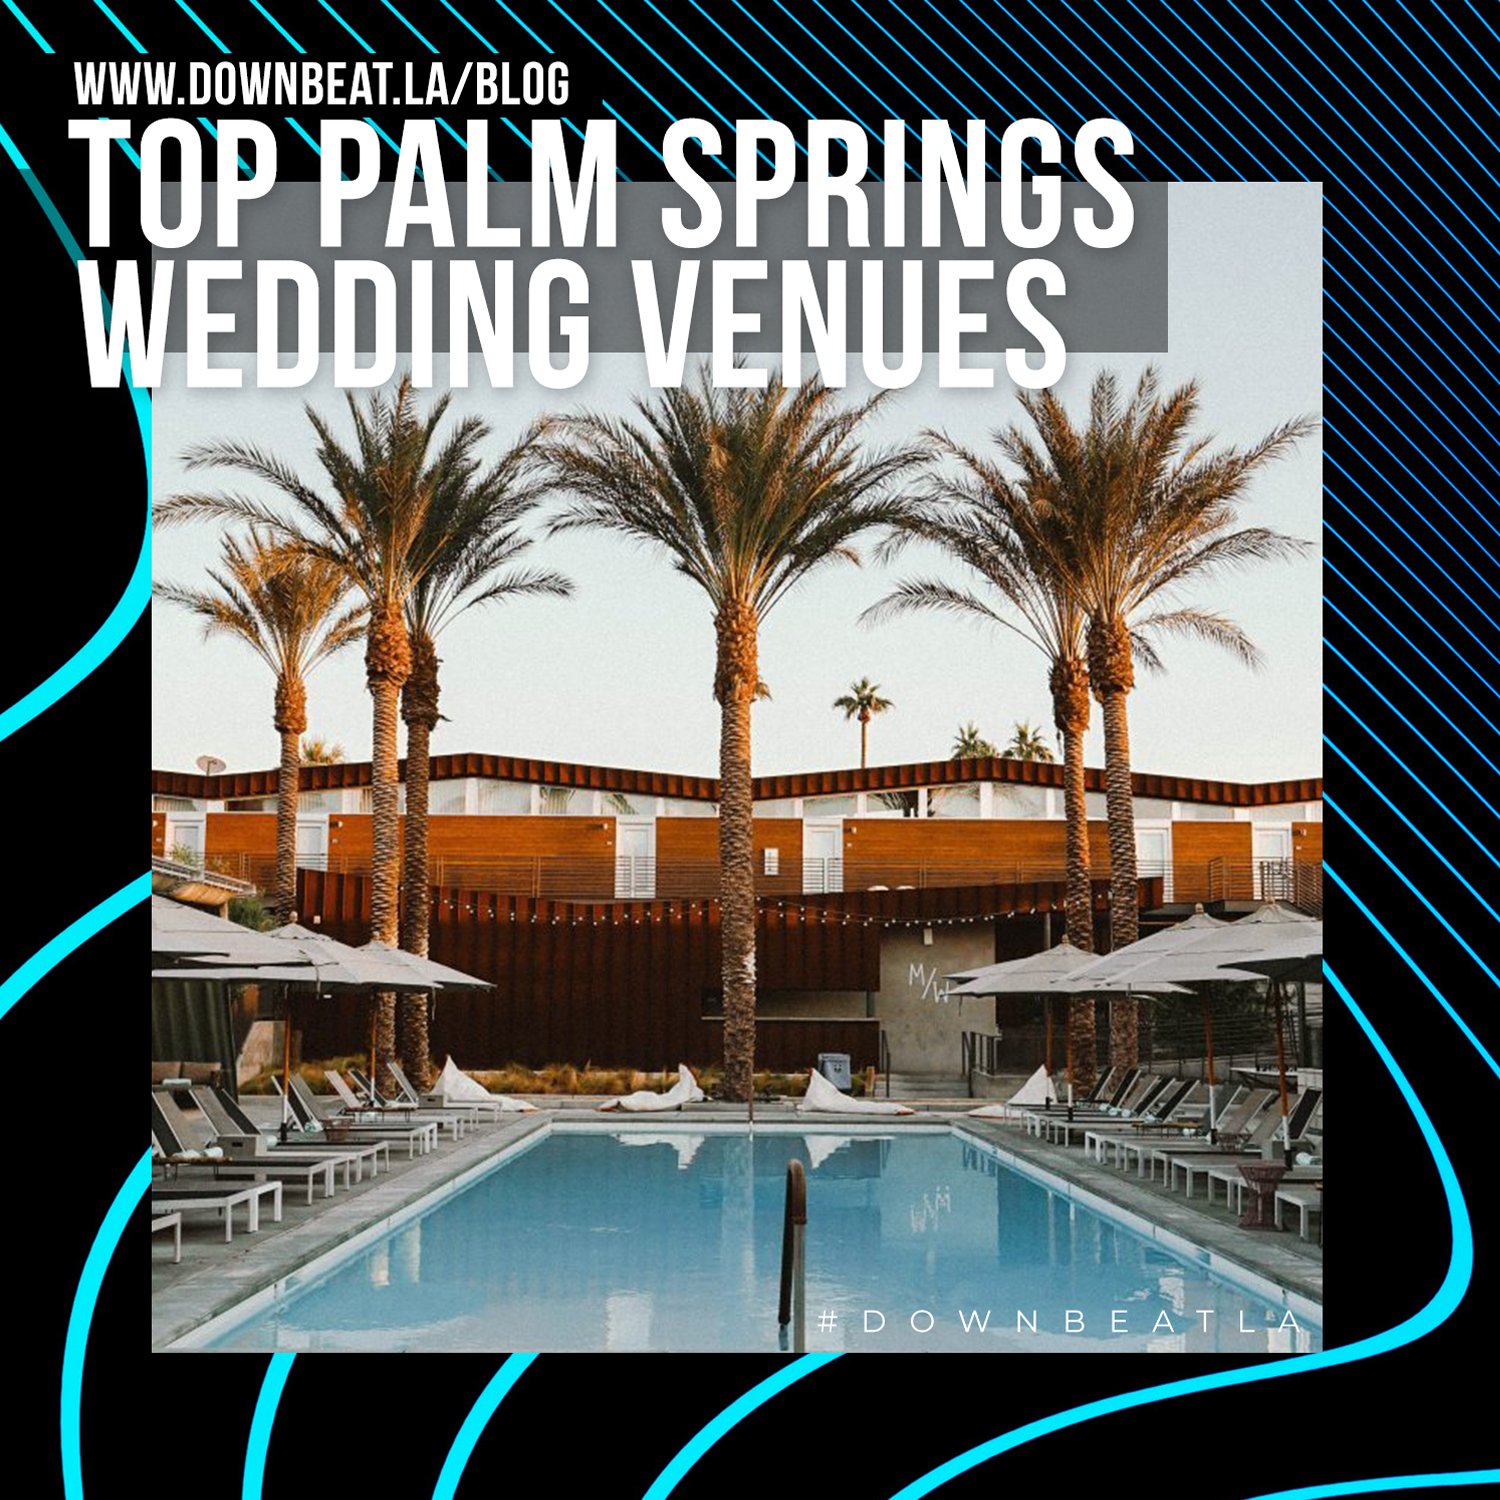 Top Palm Springs Wedding Venues.jpg